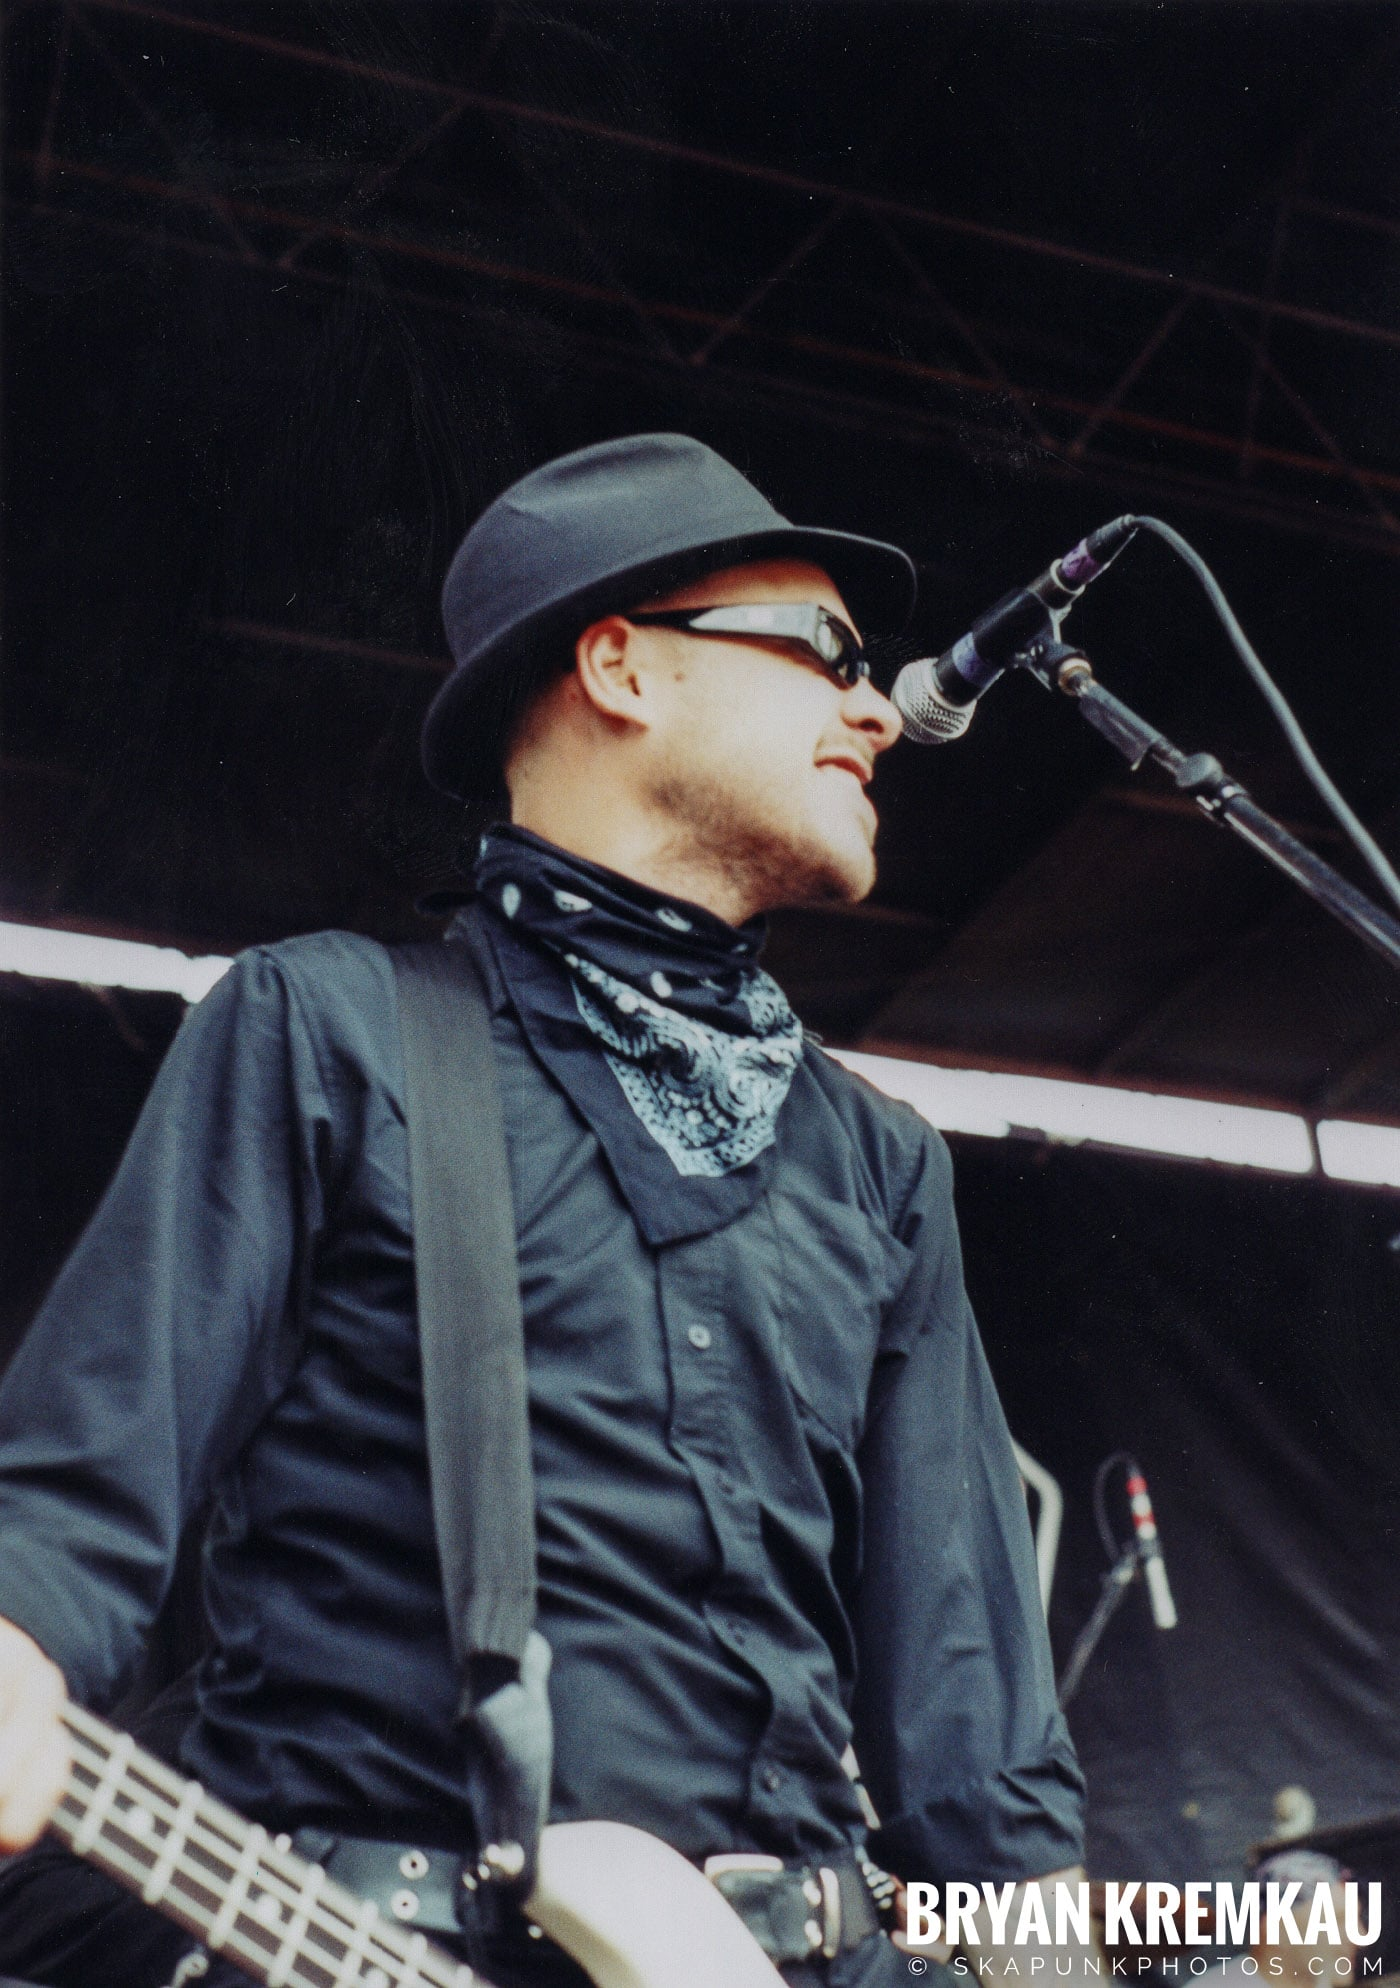 Flogging Molly @ Vans Warped Tour, Randall's Island, NYC - 8.7.04 (13)